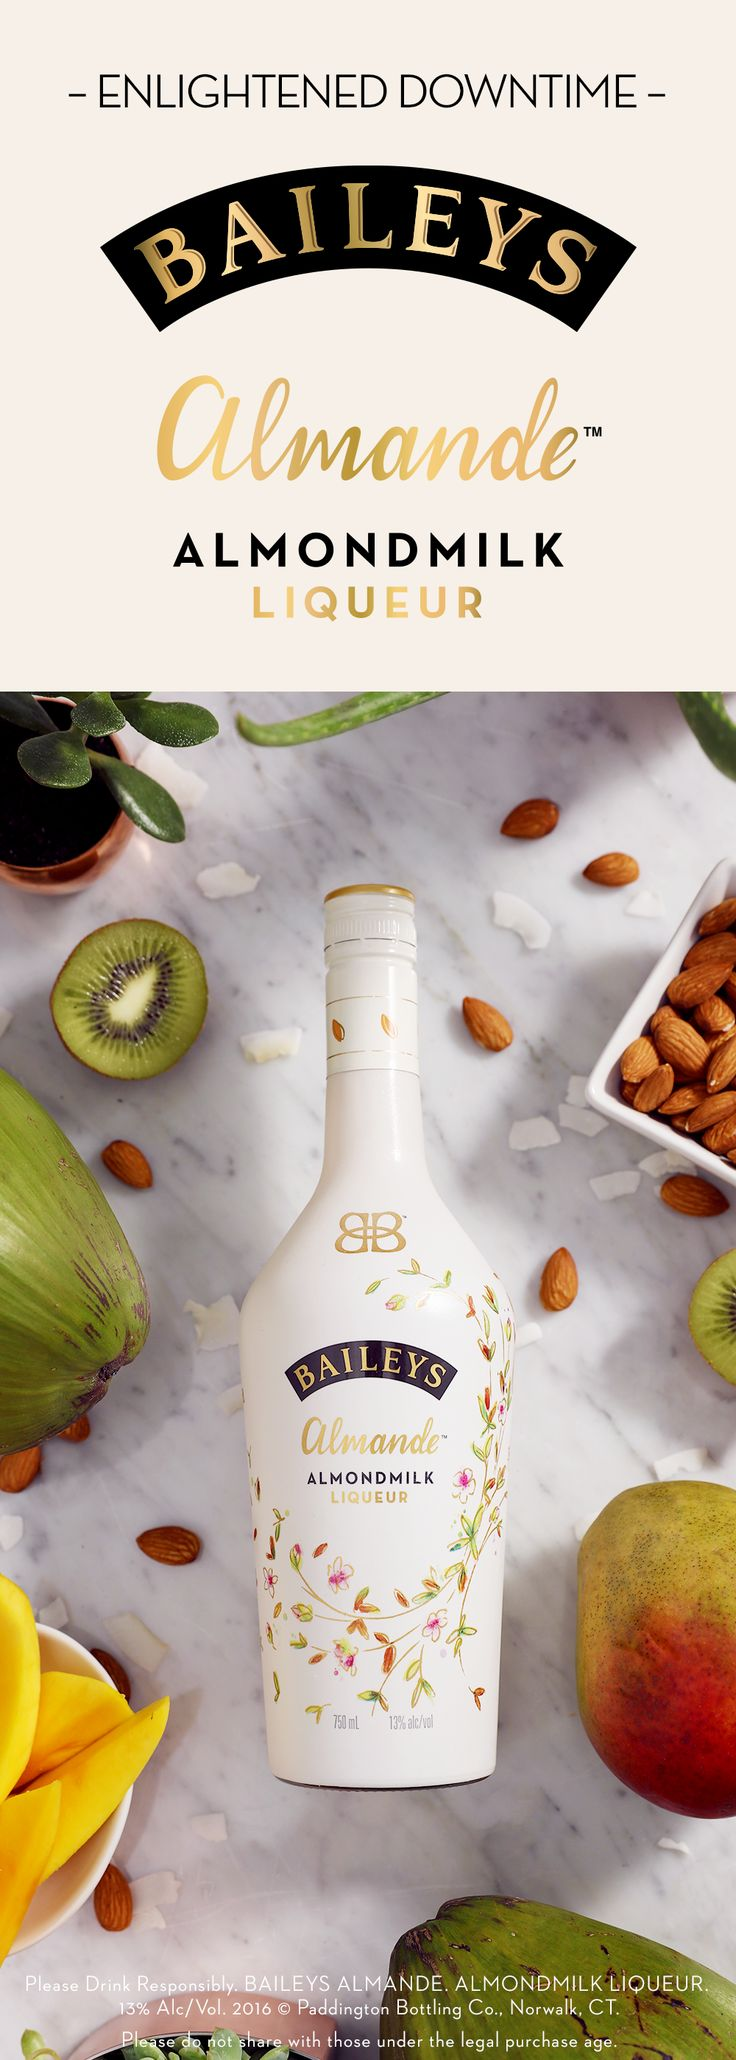 Dairy-free and gluten-free, new Baileys Almande™ is a shamelessly good alternative when you're in the mood for a sweet yet light-tasting cocktail. This almondmilk liqueur makes for some delicious drink recipes! Just add Baileys Almande™ to a rocks glass with ice, Vita Coco Coconut Water, or your favorite smoothie.